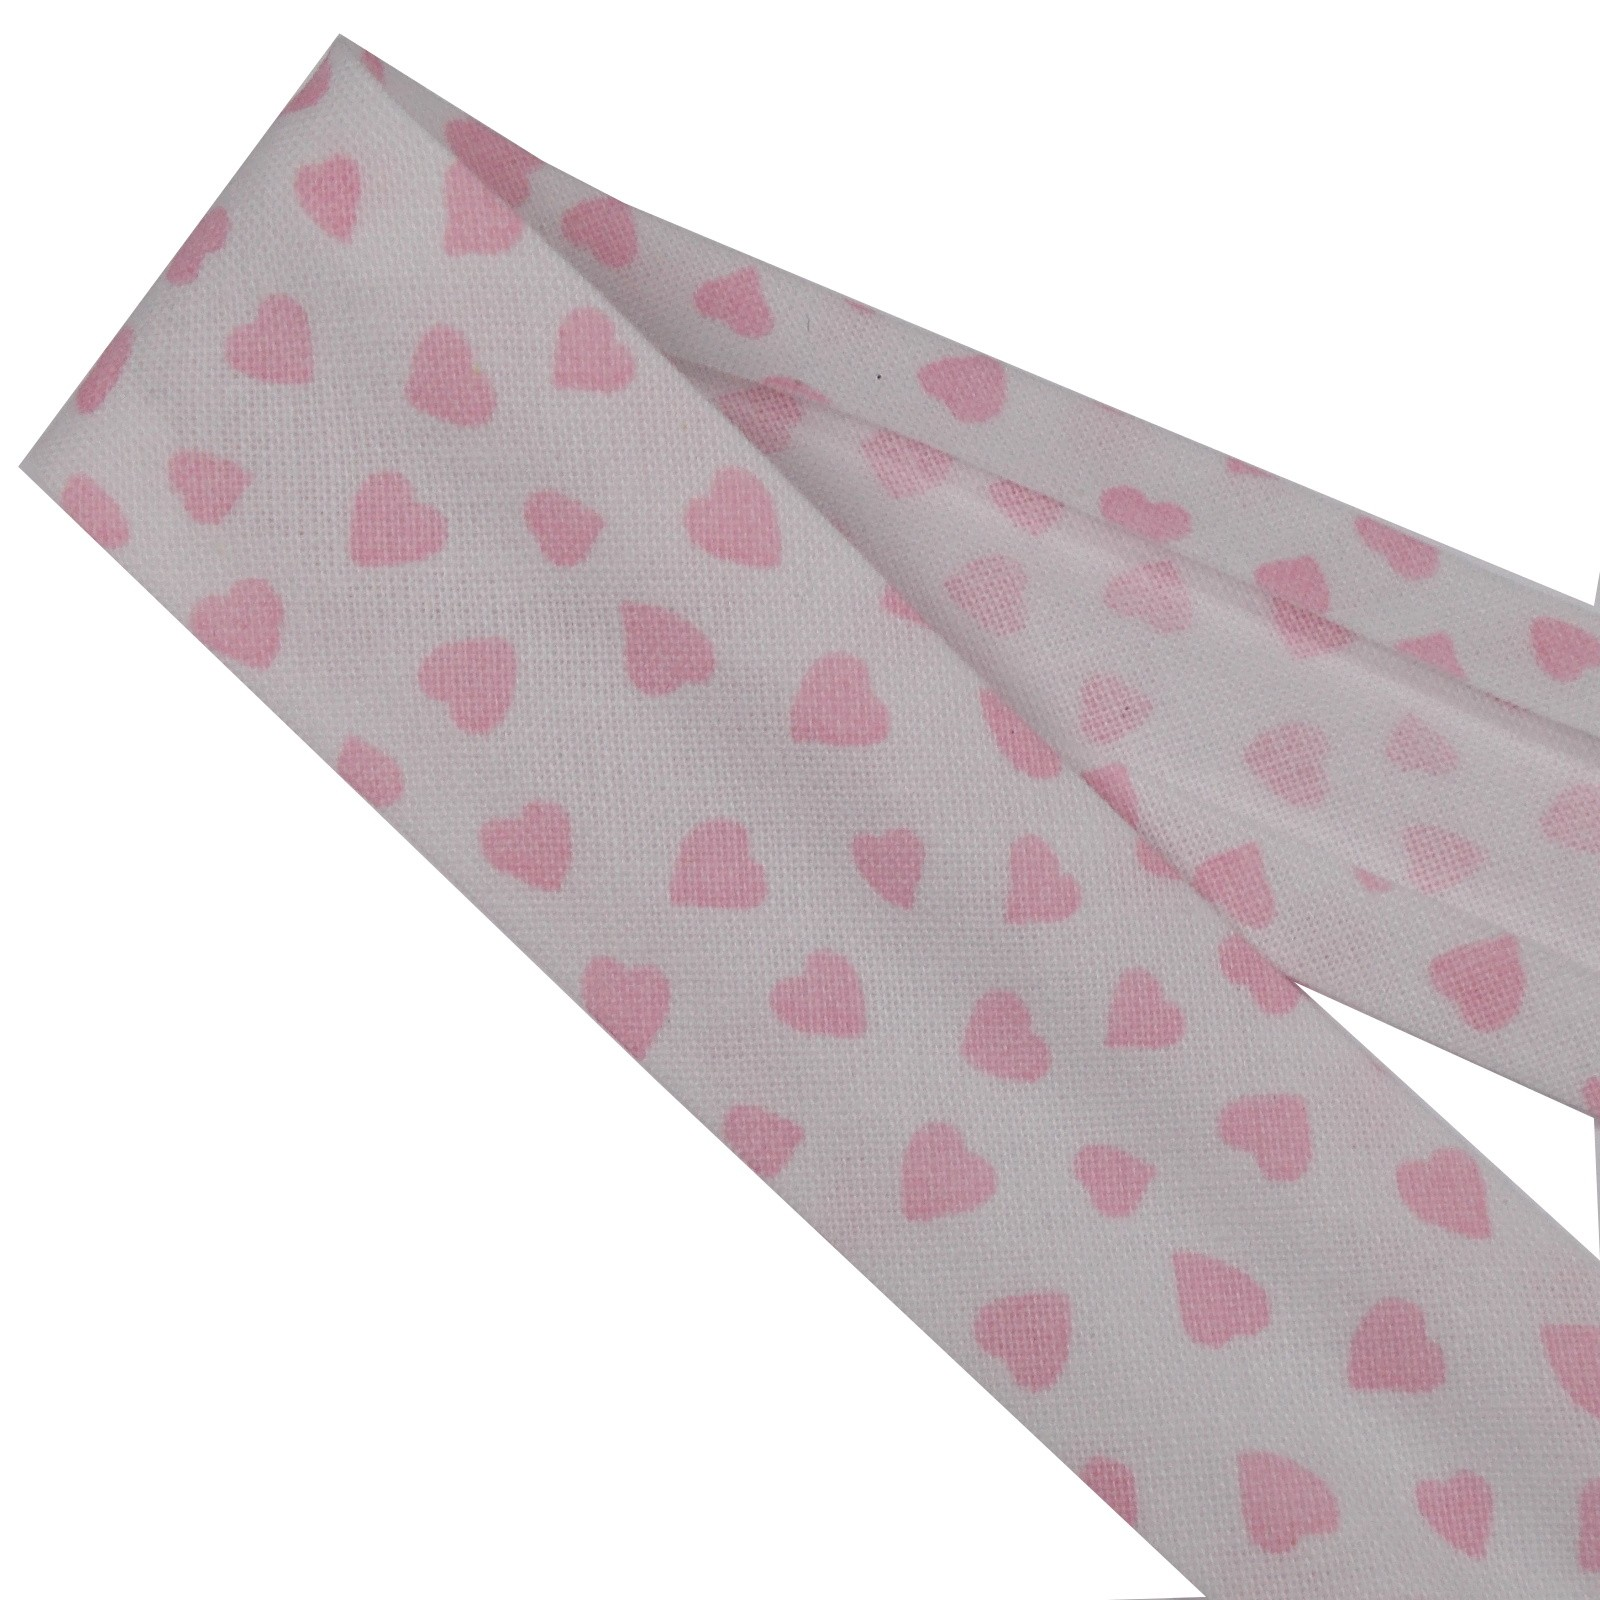 Bias Binding Patterned Cotton 25mm White with Pink Hearts 1 metre length